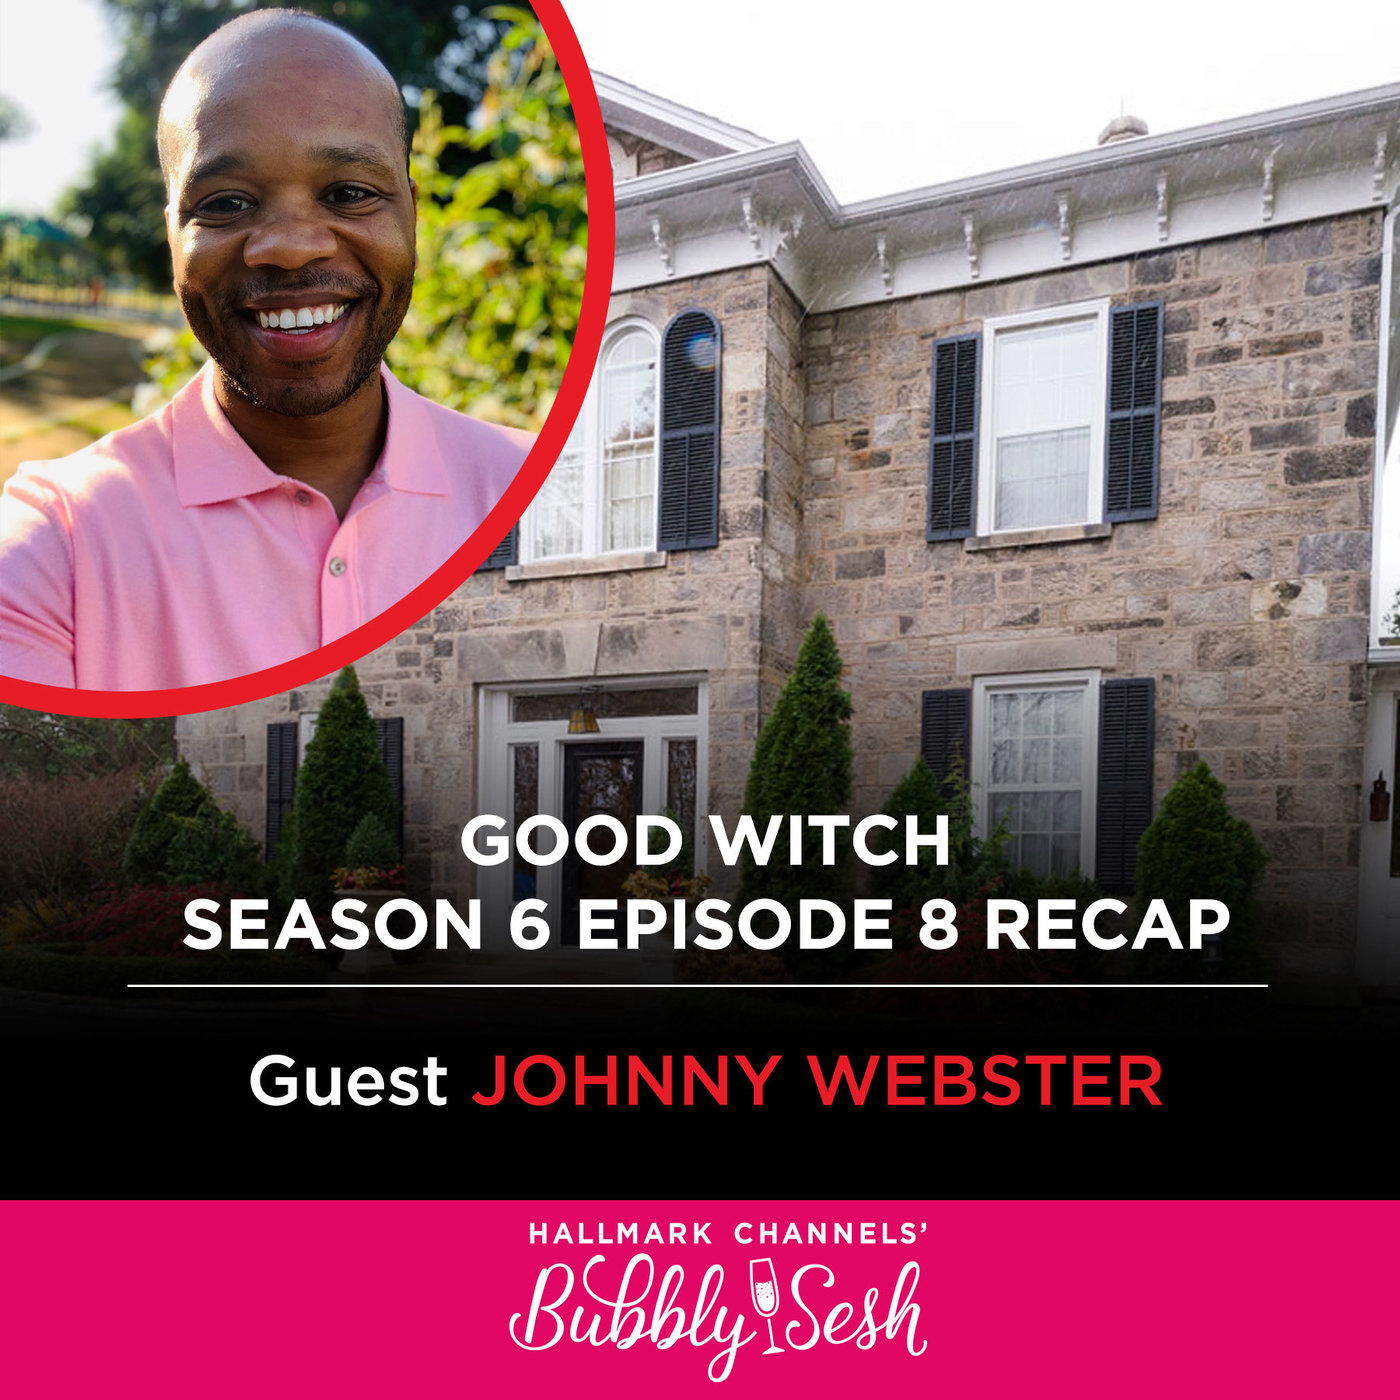 Good Witch Season 6, Episode 8 Recap with Guest Johnny Webster